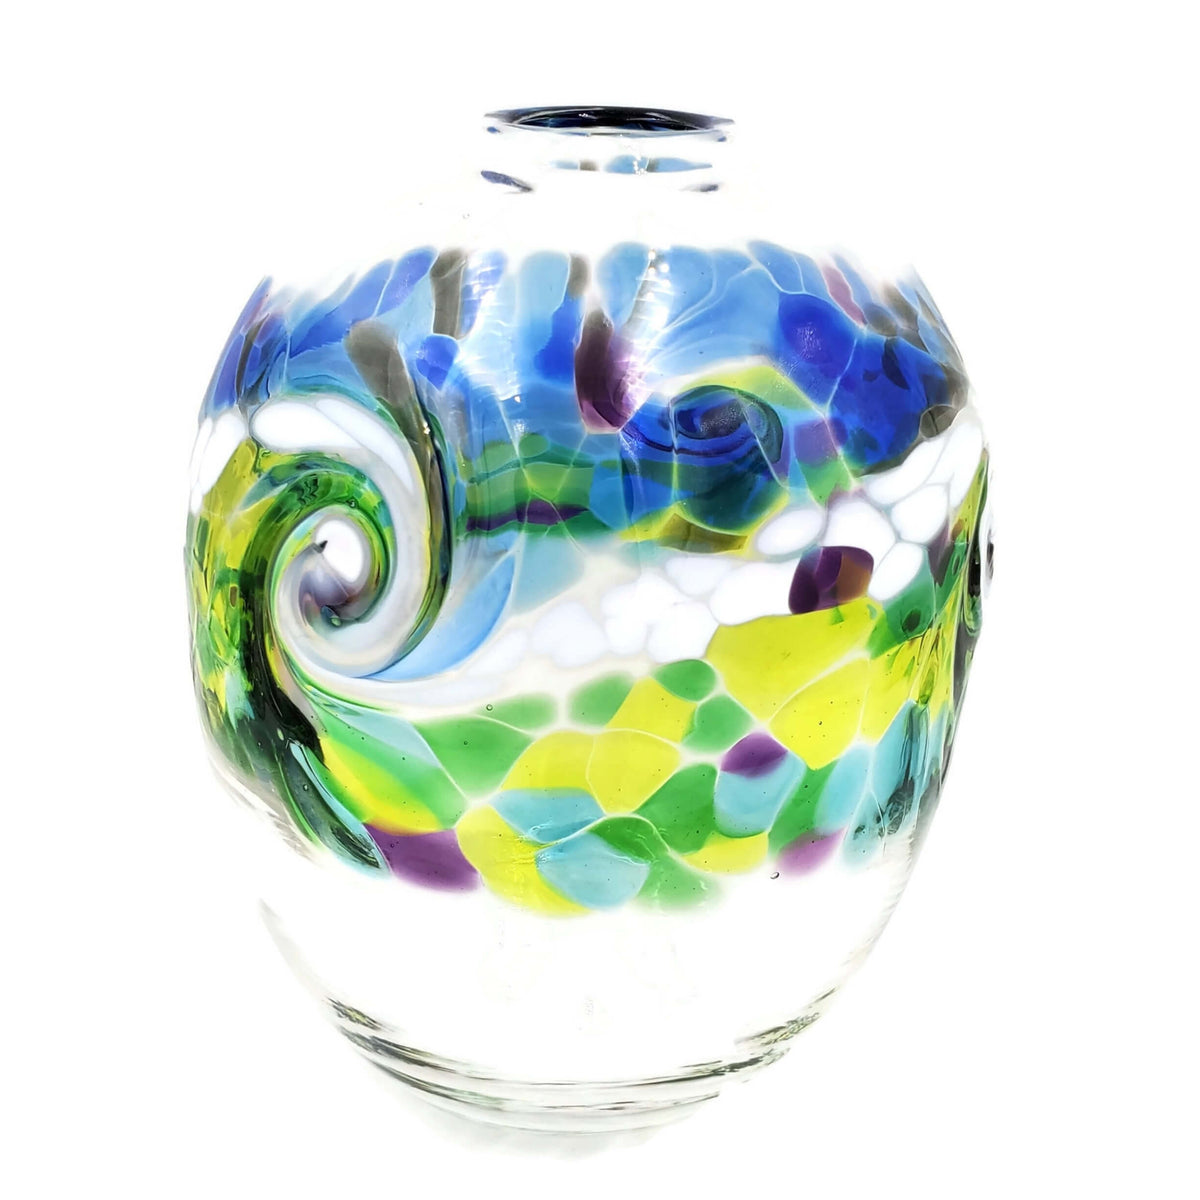 Hand-blown, clear glass oval shaped vase with wave-like green and white swirl  plus accent colors of purple, yellow, and blue.